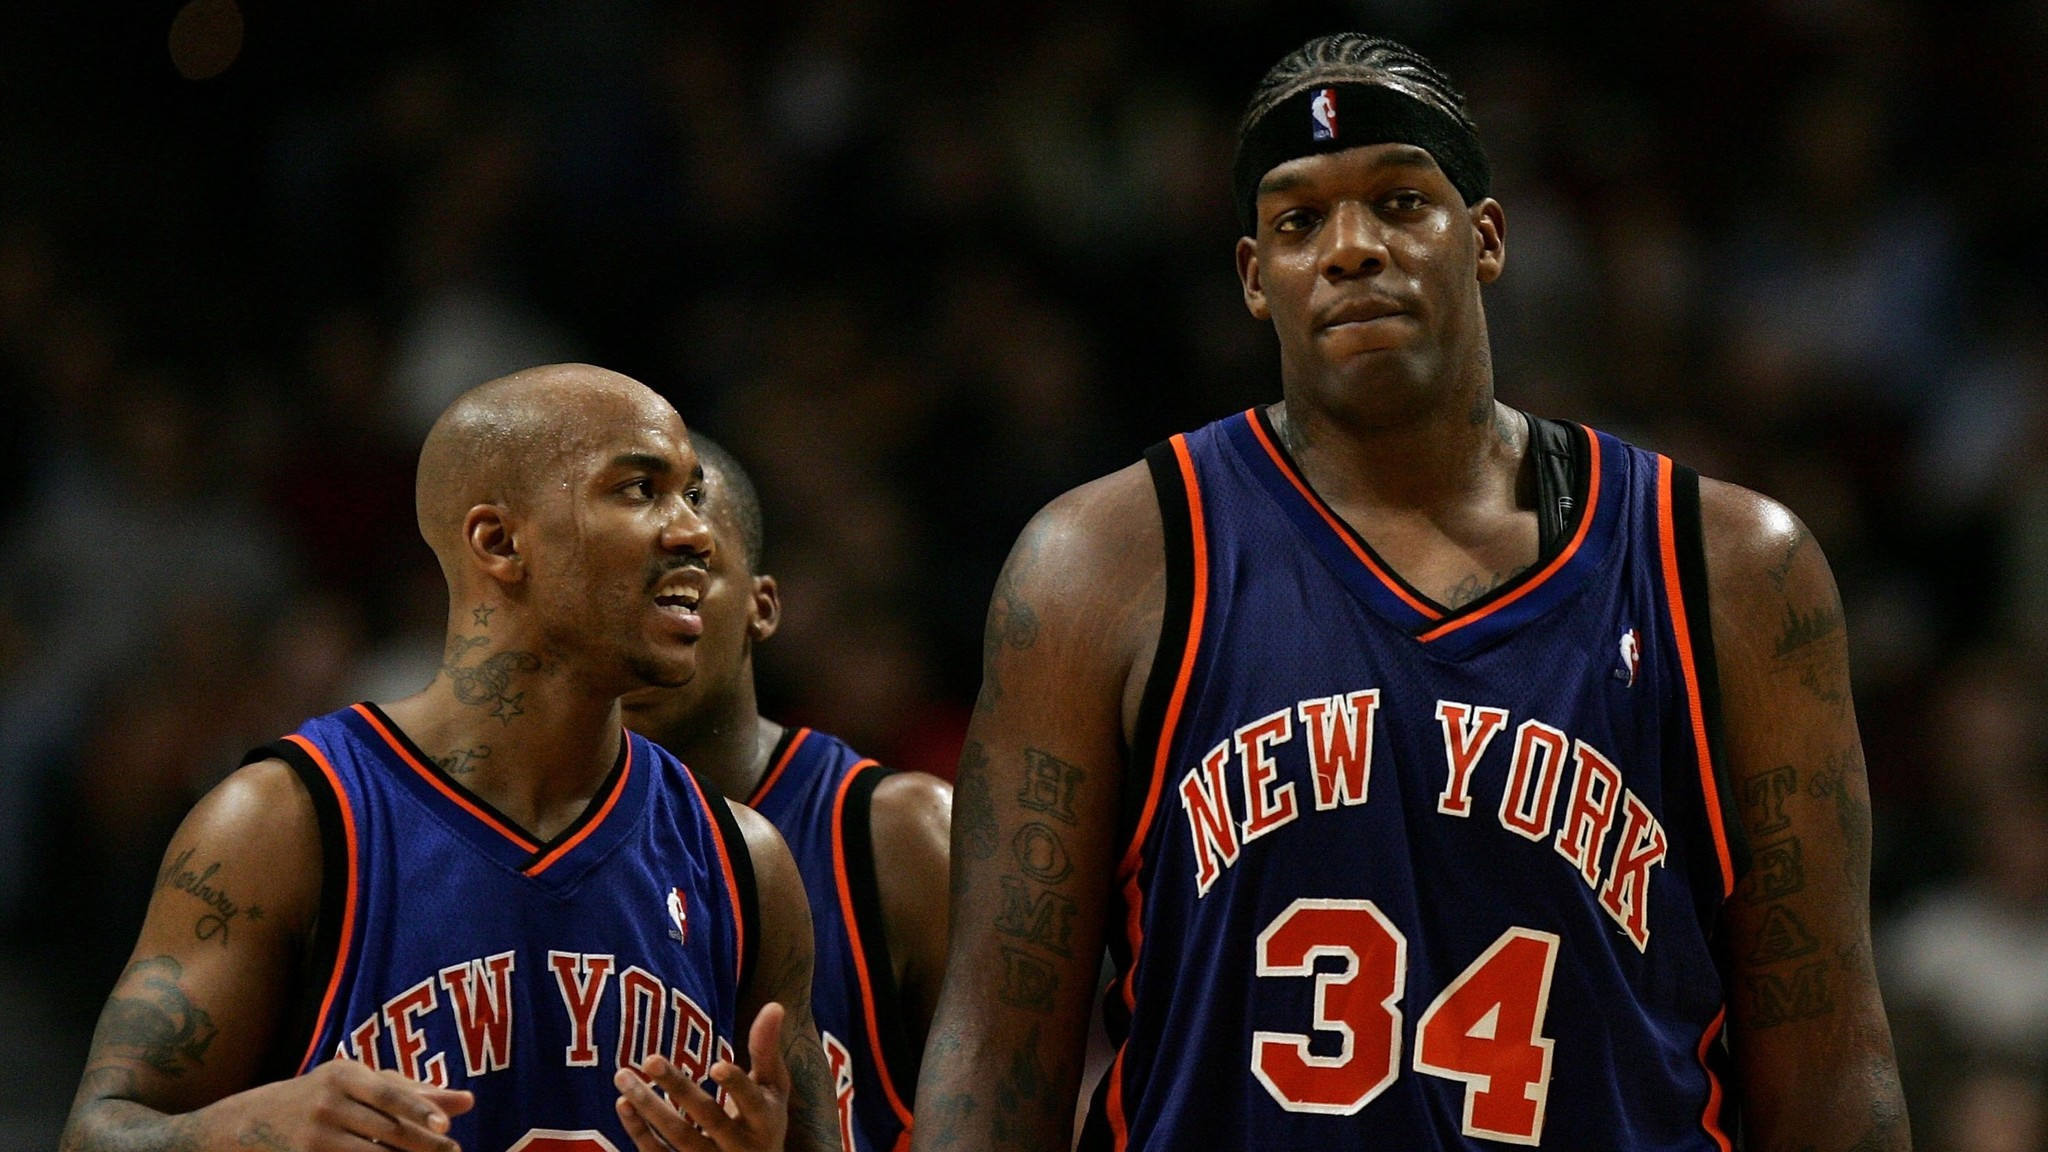 Eddy Curry opens up about the disappointments, disasters and tragedies of his career